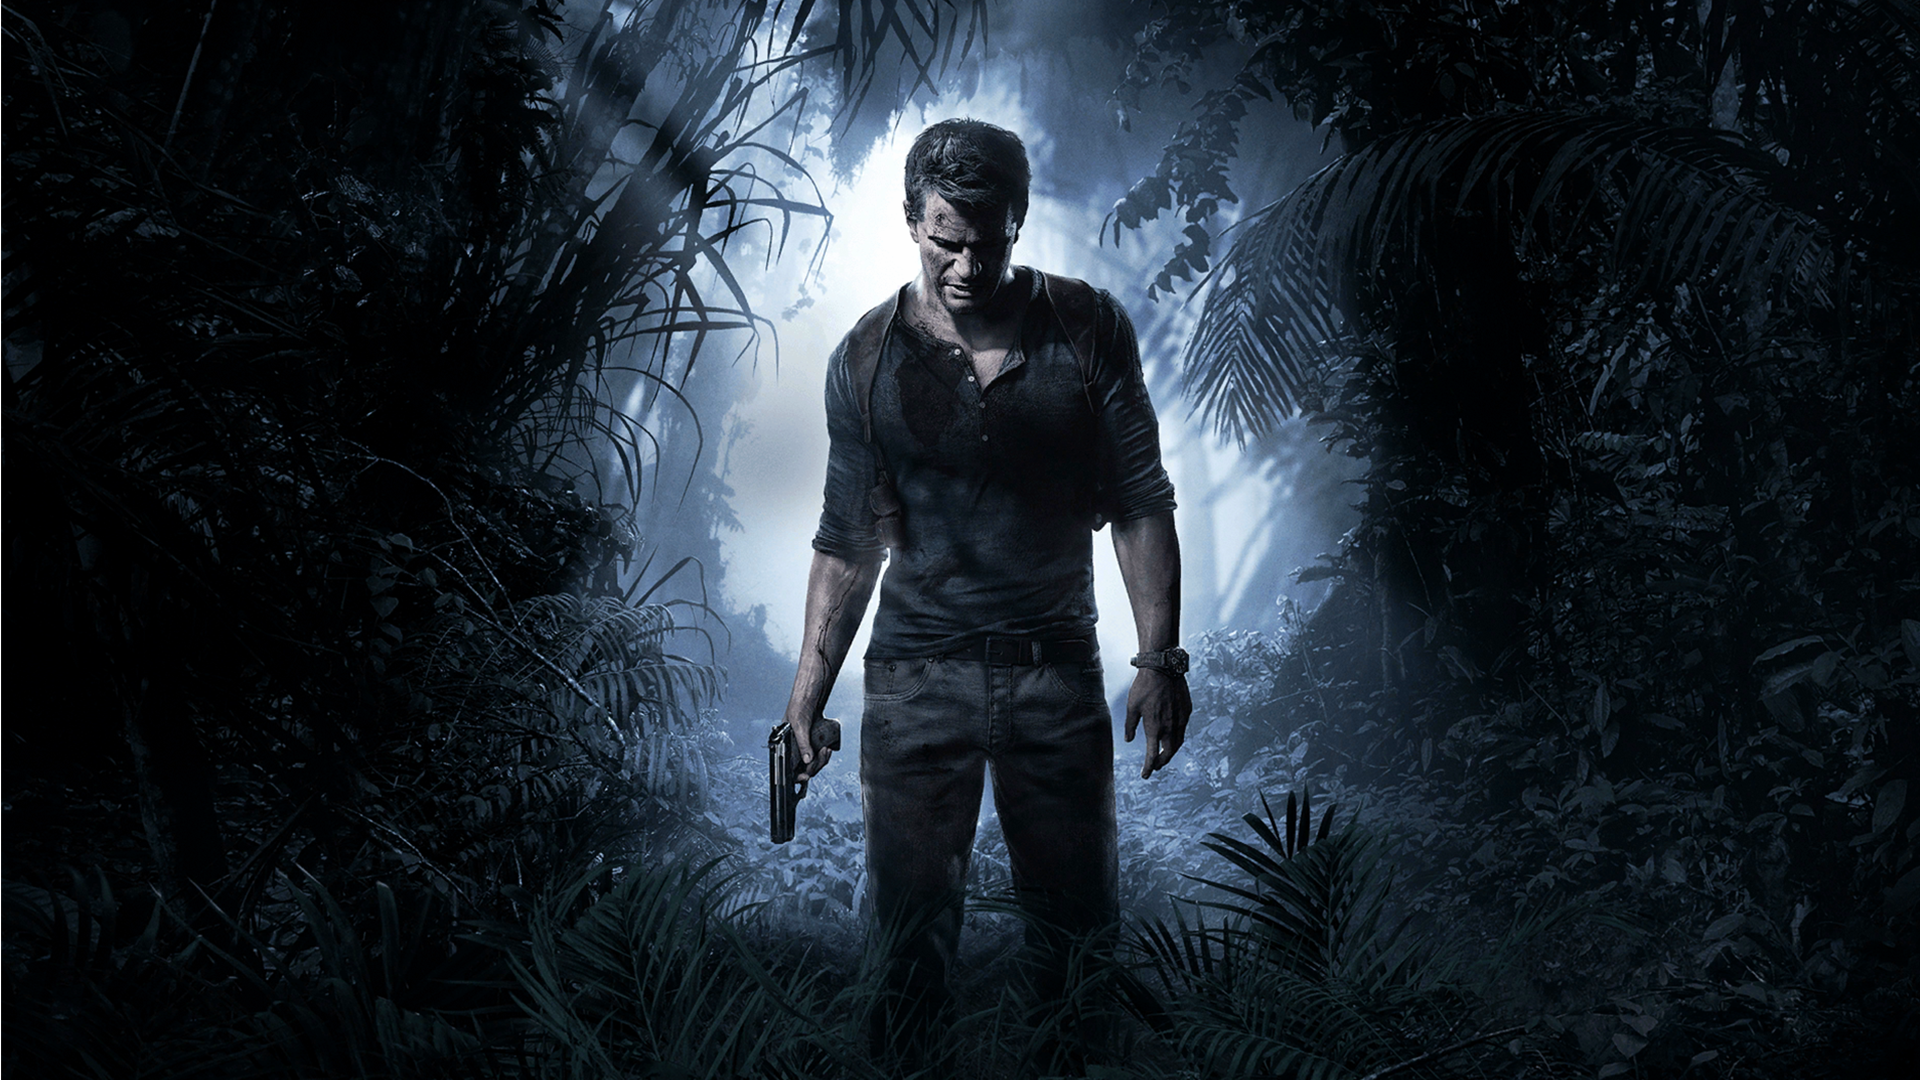 Uncharted 4 : A Thief's End